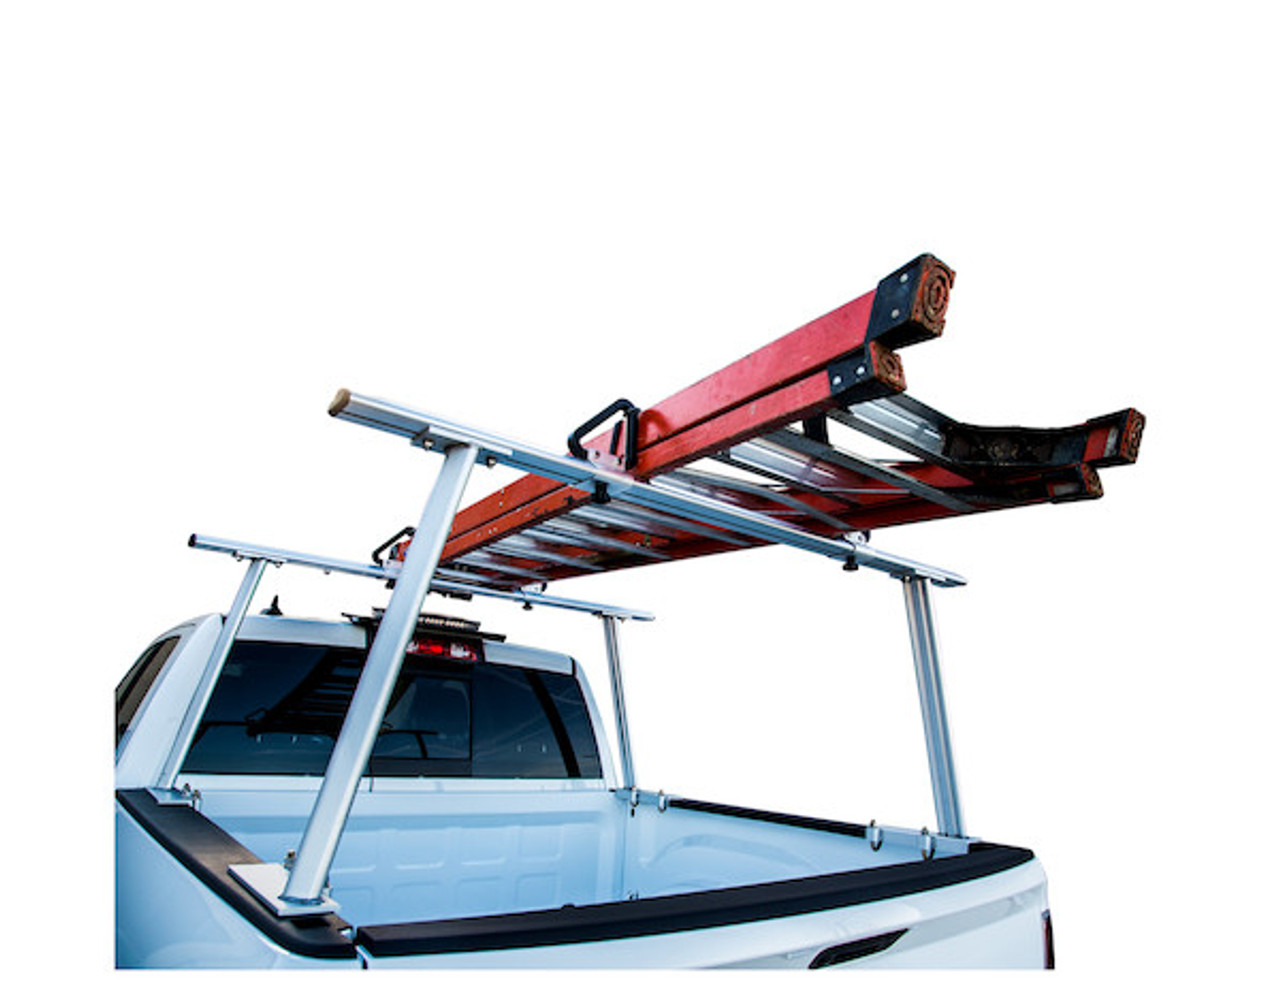 BUYERS 1501675 Aluminum Truck Rack for Contractors, Construction, Electricians Picture # 4